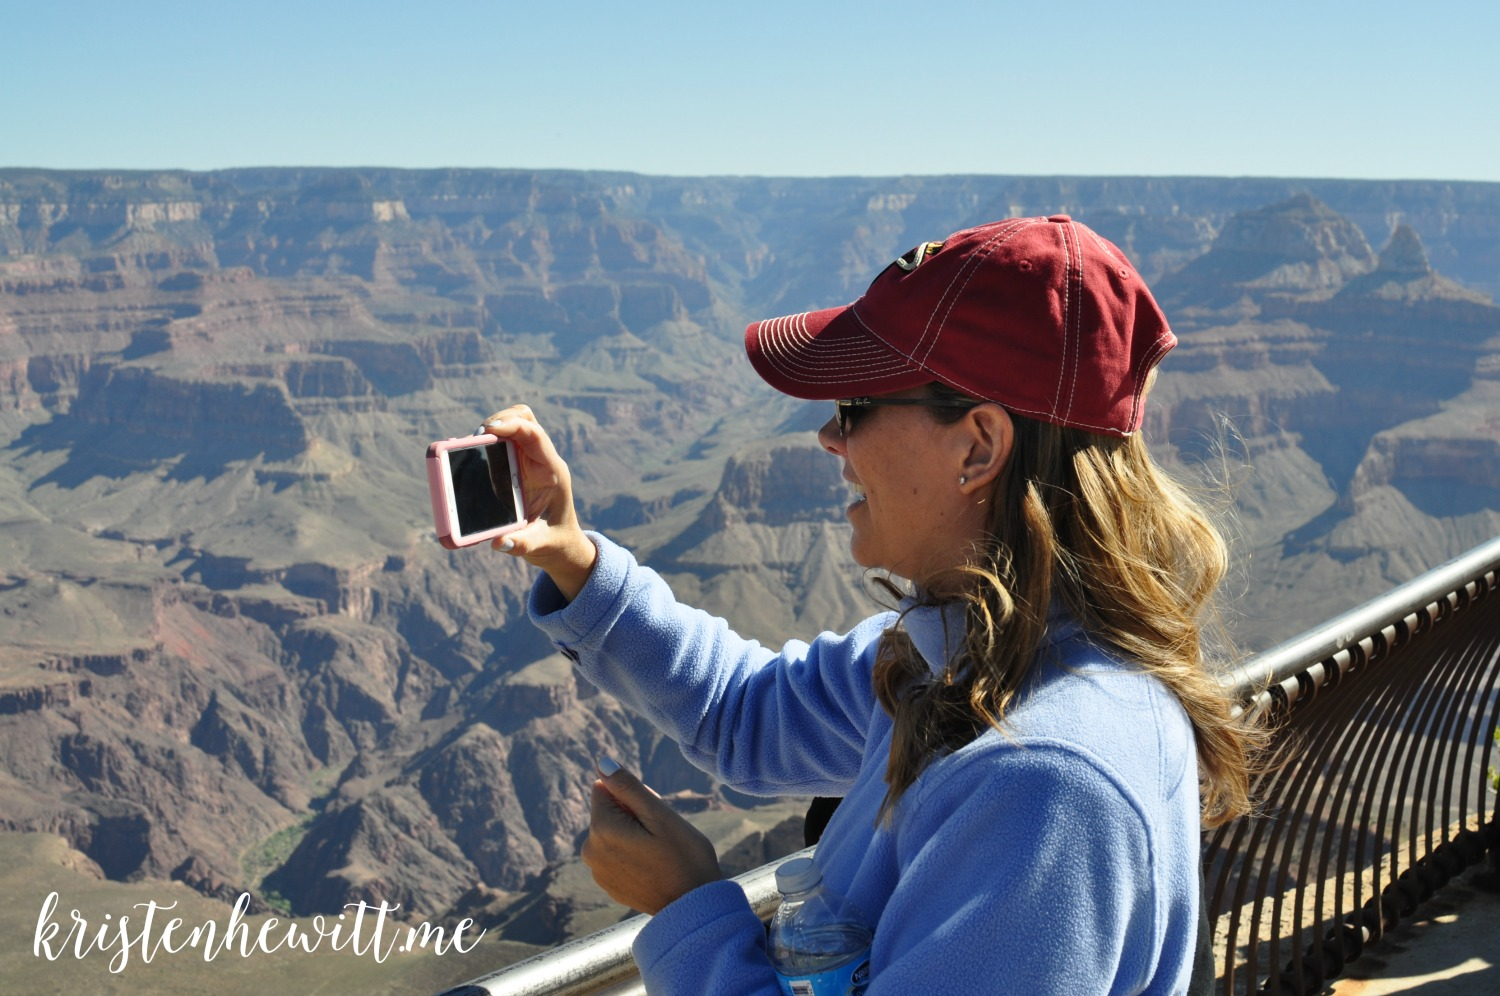 Are you heading west to Arizona with your kids? Before you go read this first, and make the most of your time in the Grand Canyon State!